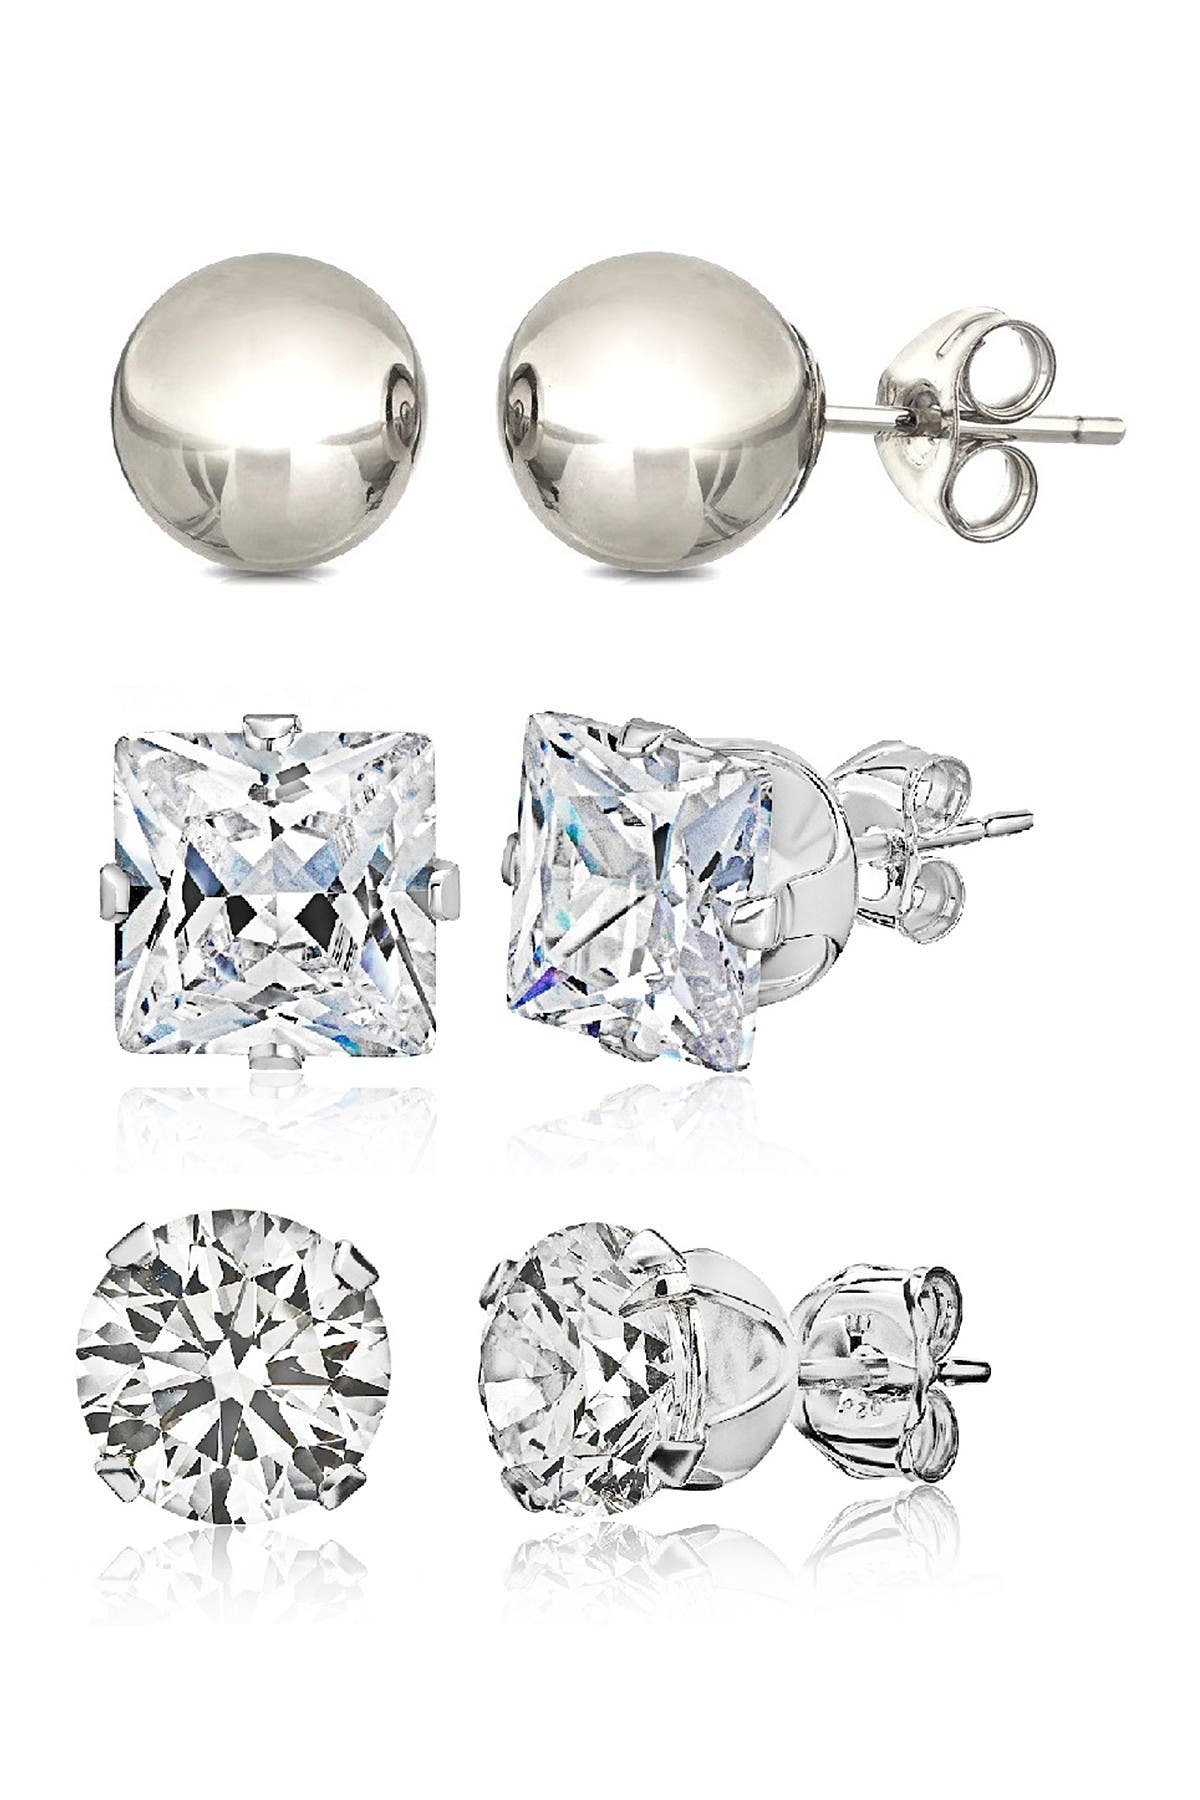 Image of Best Silver Inc. Sterling Silver & CZ Assorted Earring Set